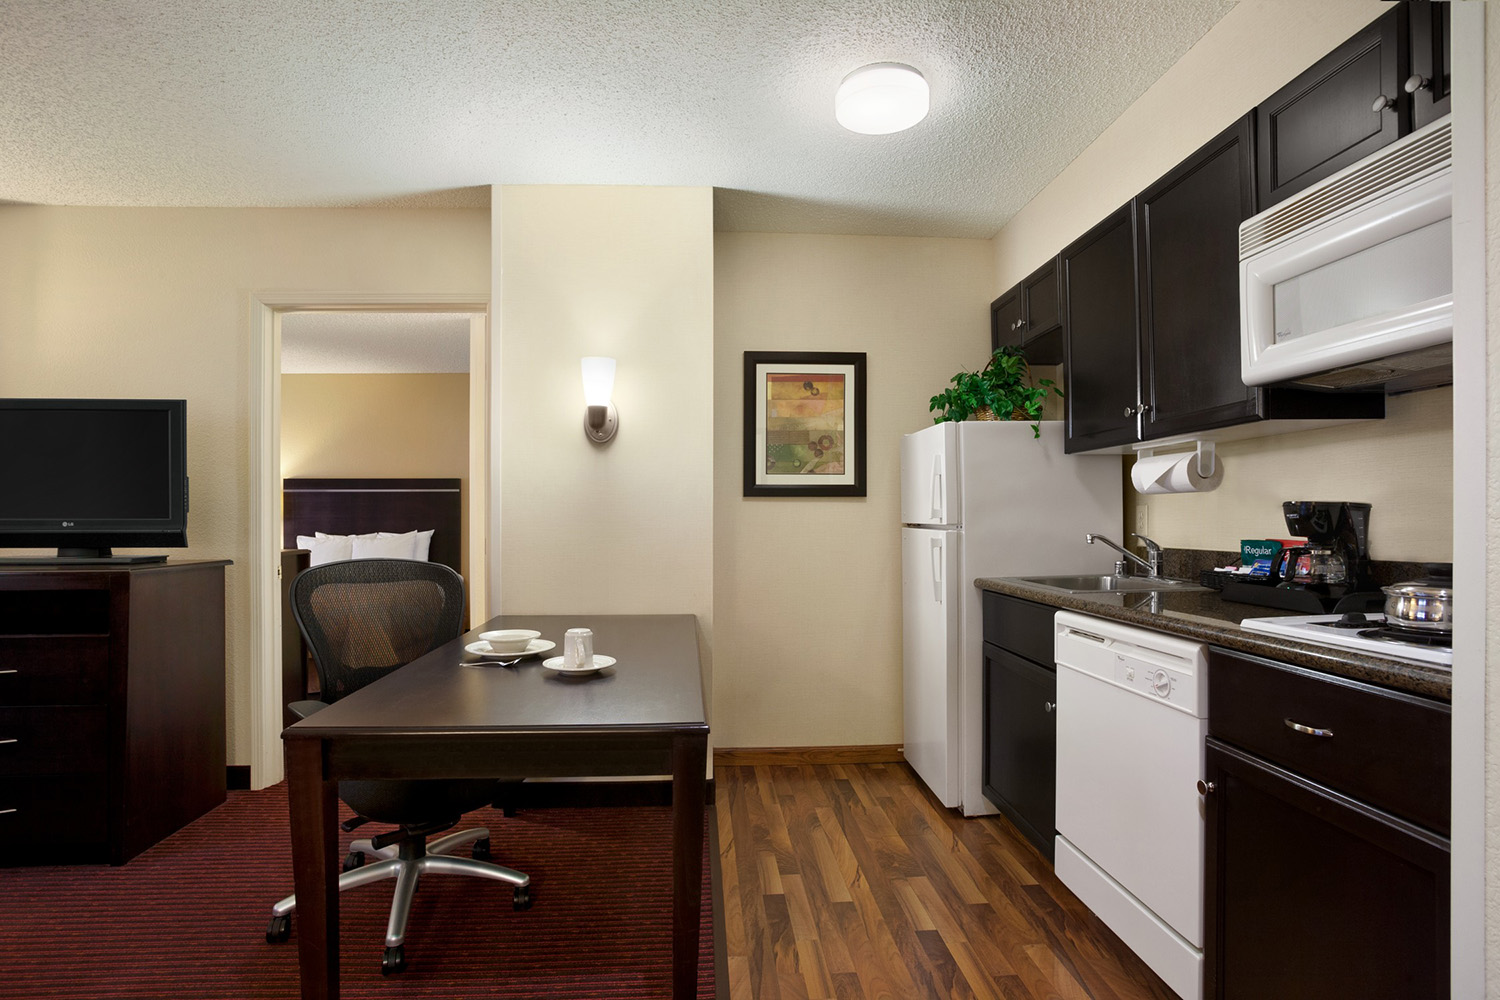 anaheim hotels with kitchen near disneyland outdoor pics where and how to eat cheap at part 2 ksl